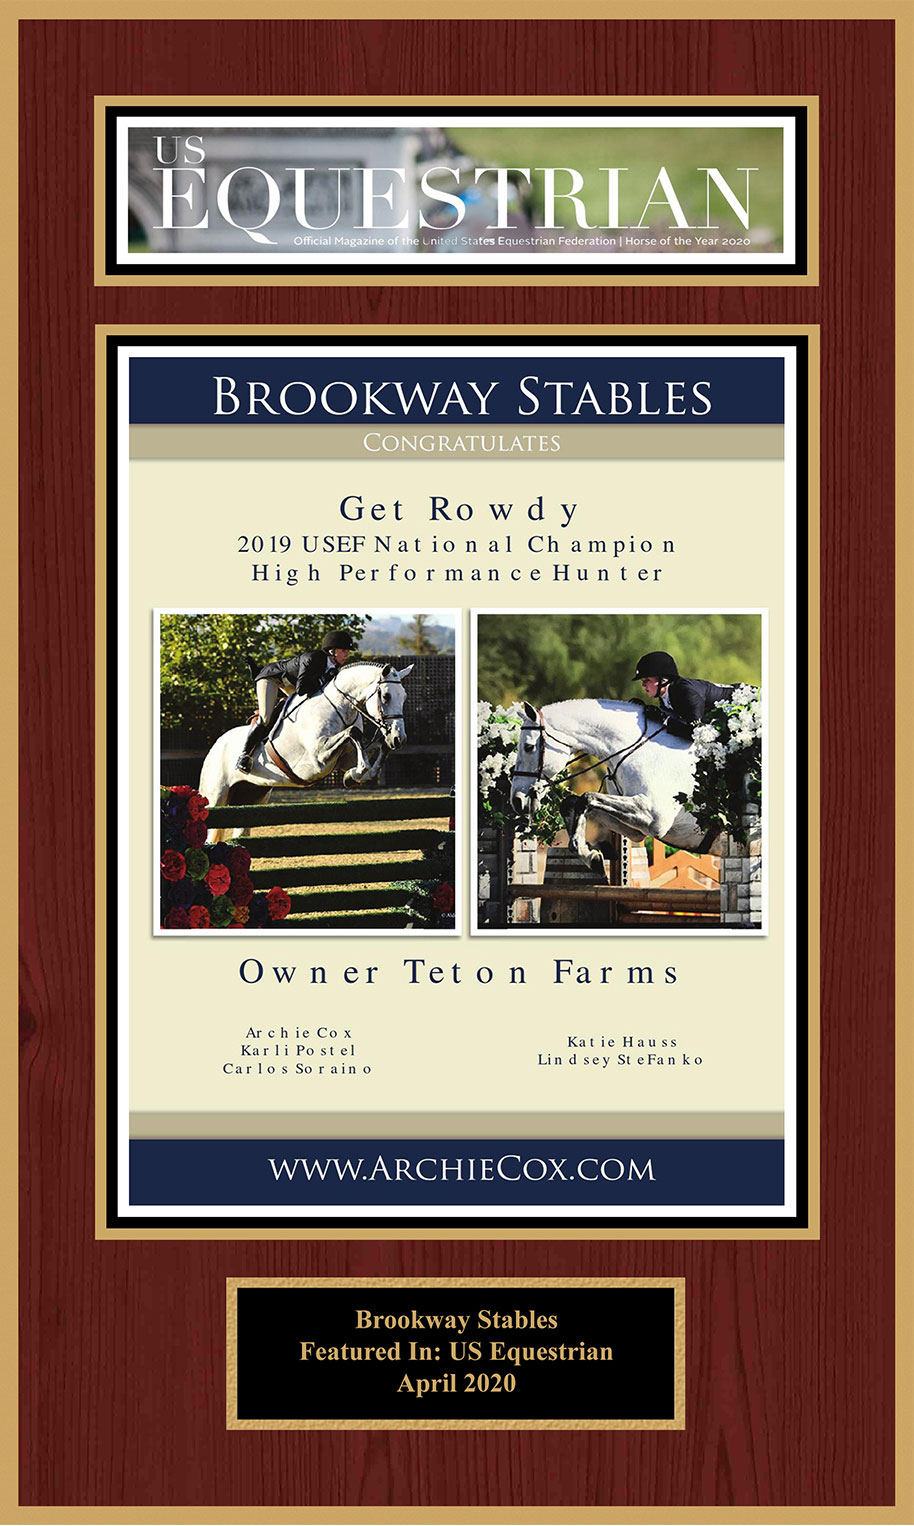 Brookway Stables Featured in US Equestrian April 2020